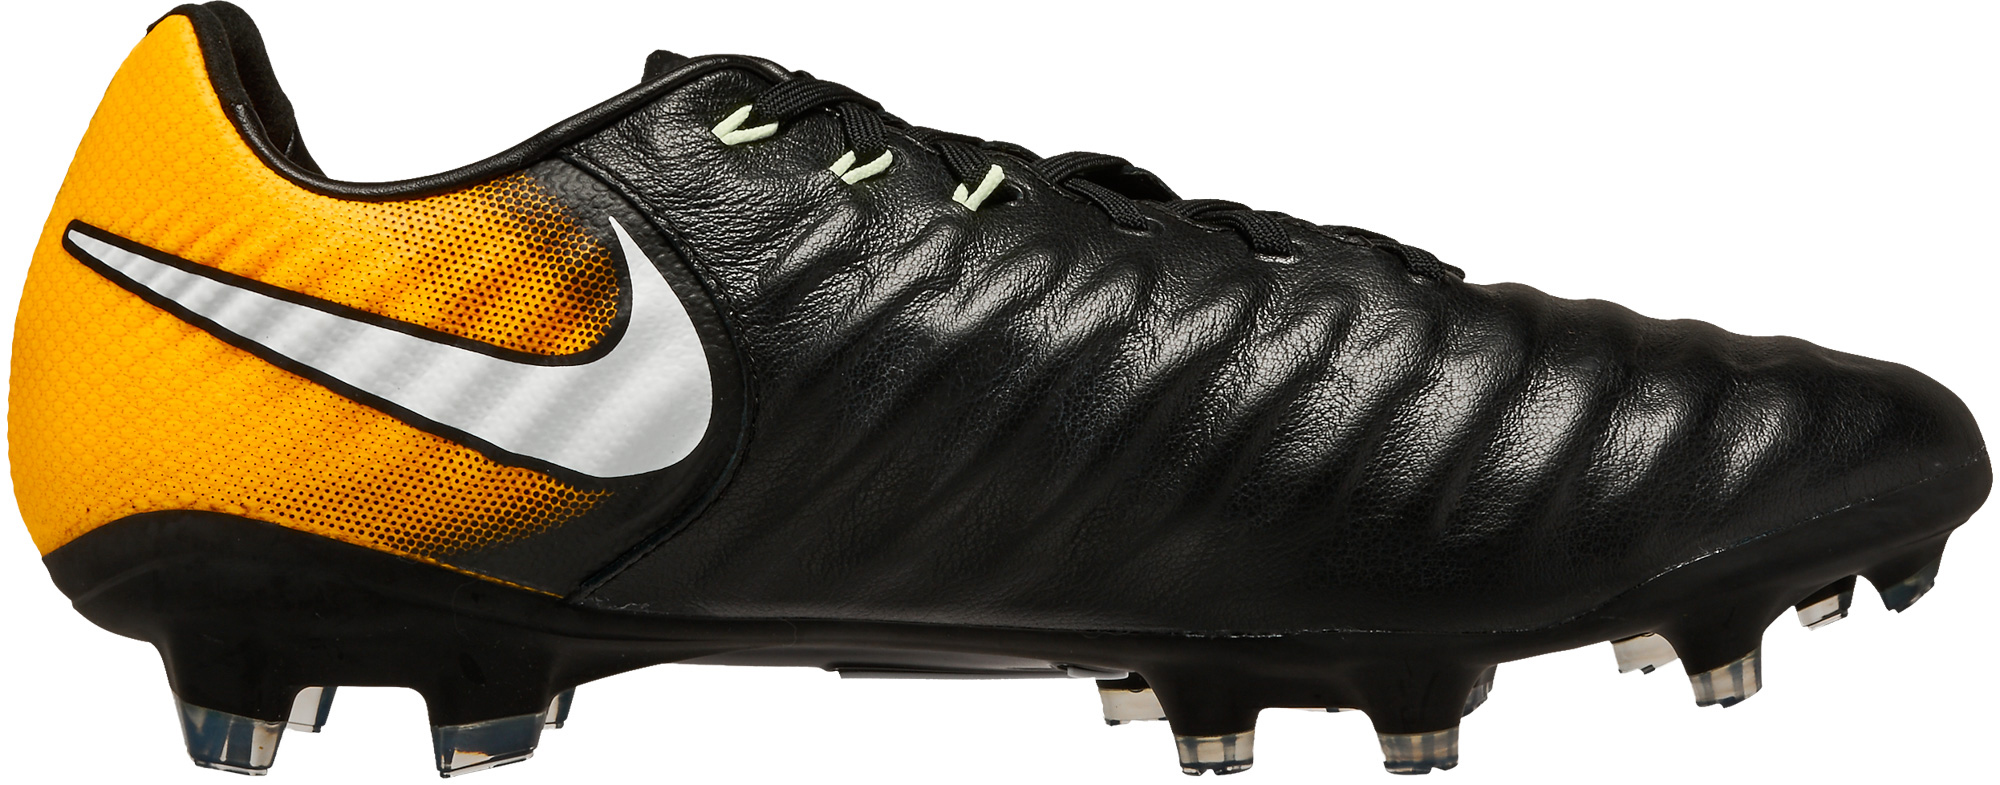 19d272076c2 Home   Shop By Brand   Nike Soccer   Nike Soccer Shoes   Nike Tiempo ...